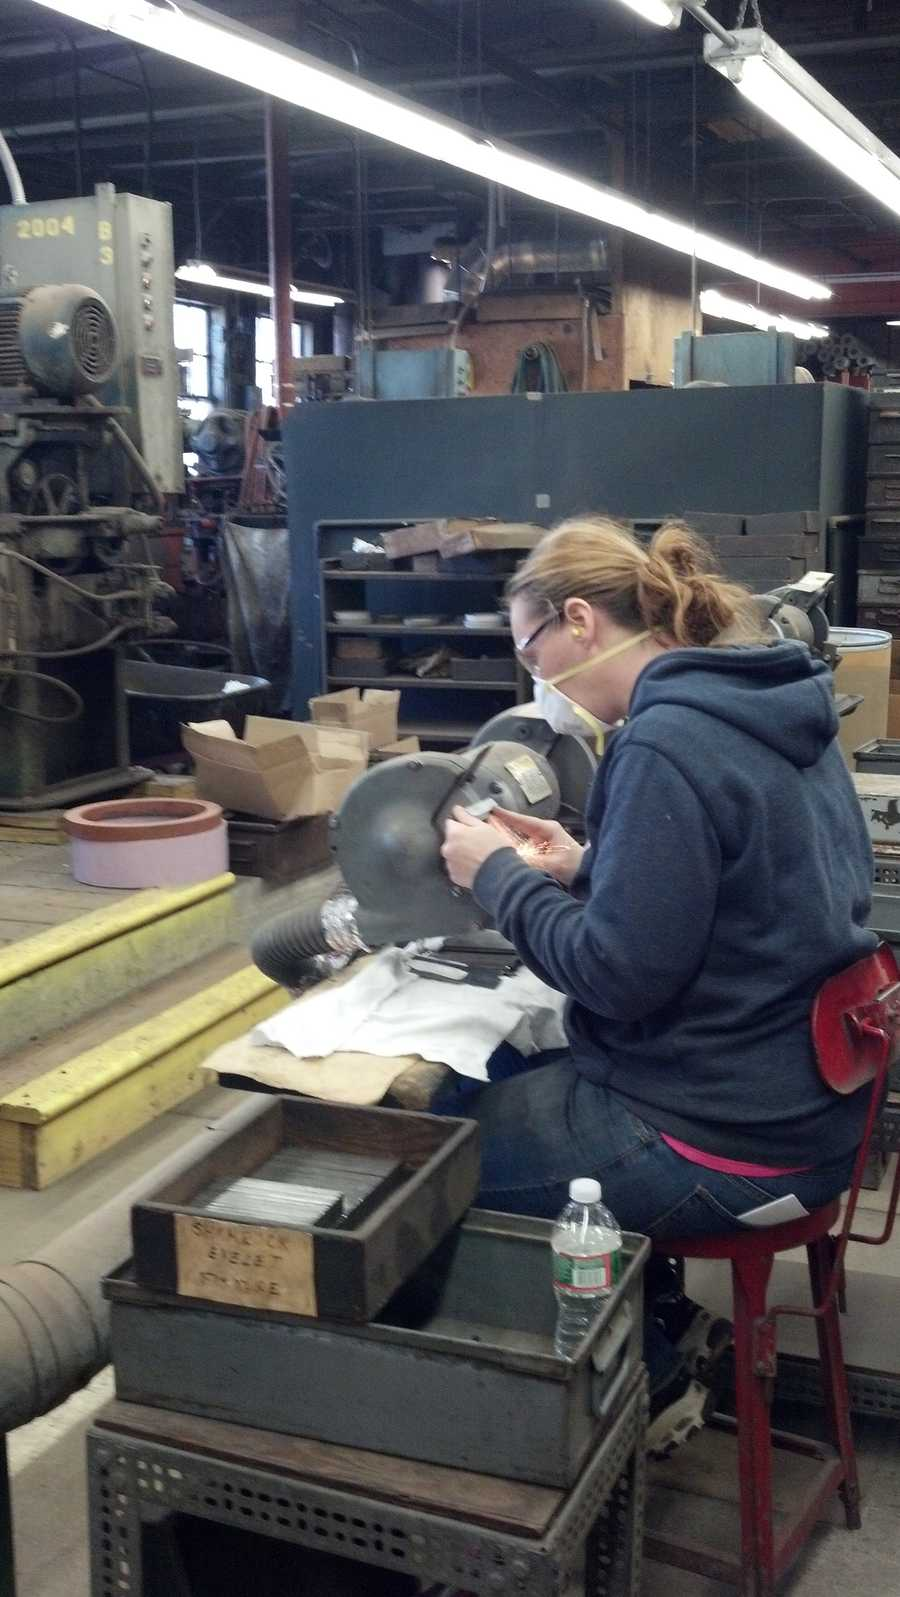 The company has 13 employees. Heather, an employee, is edging a blade.